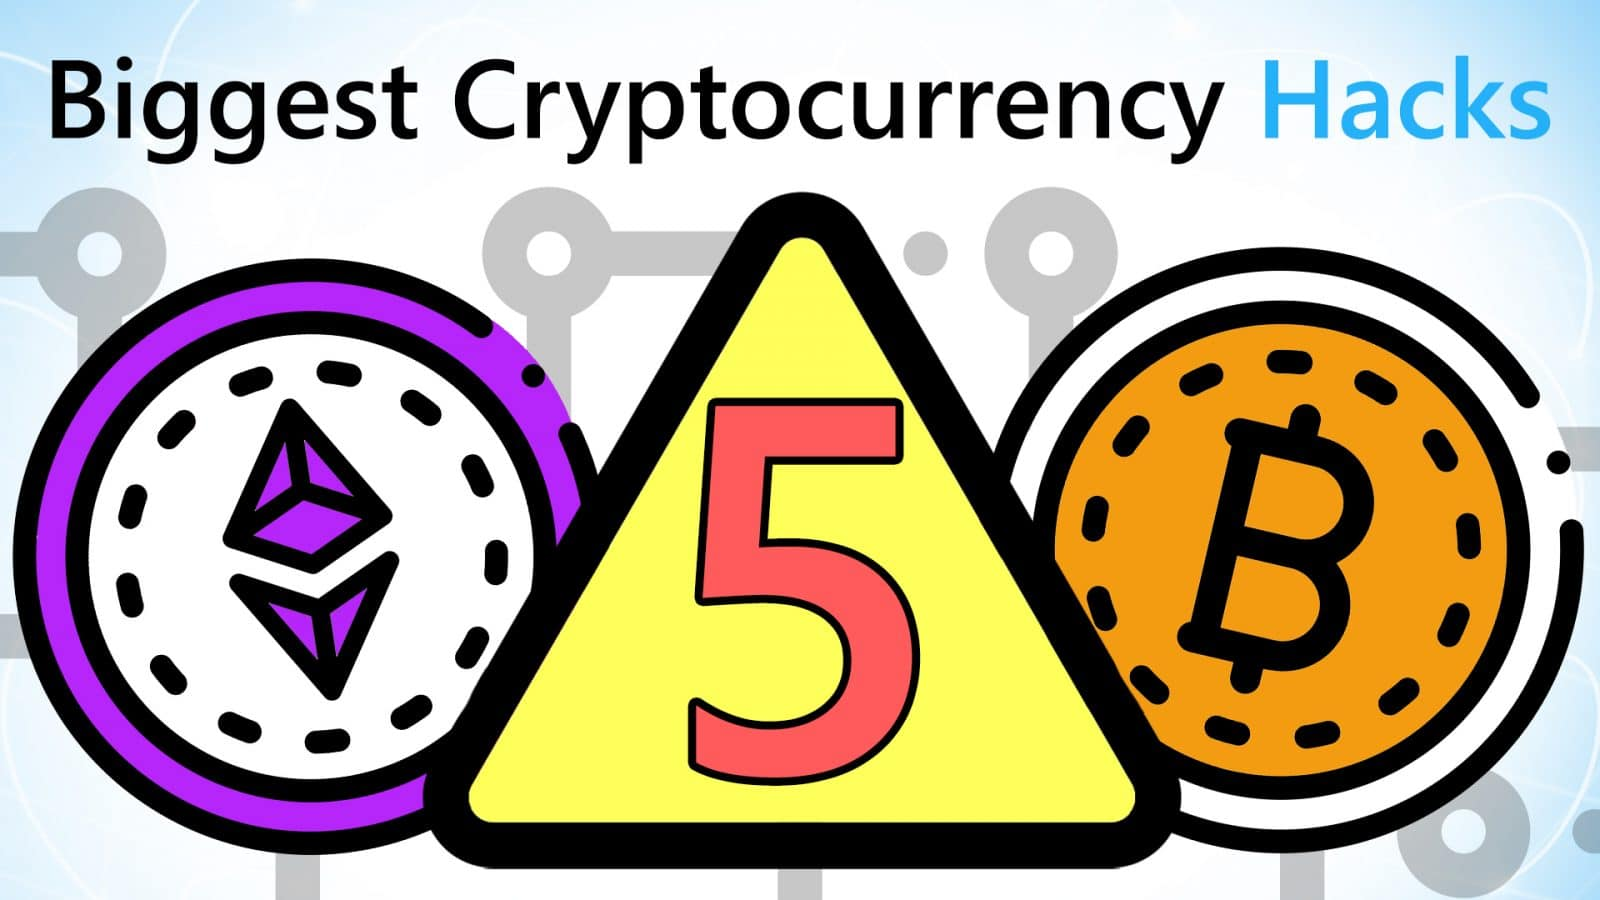 Video Guide: Five Major Cryptocurrency Hacks